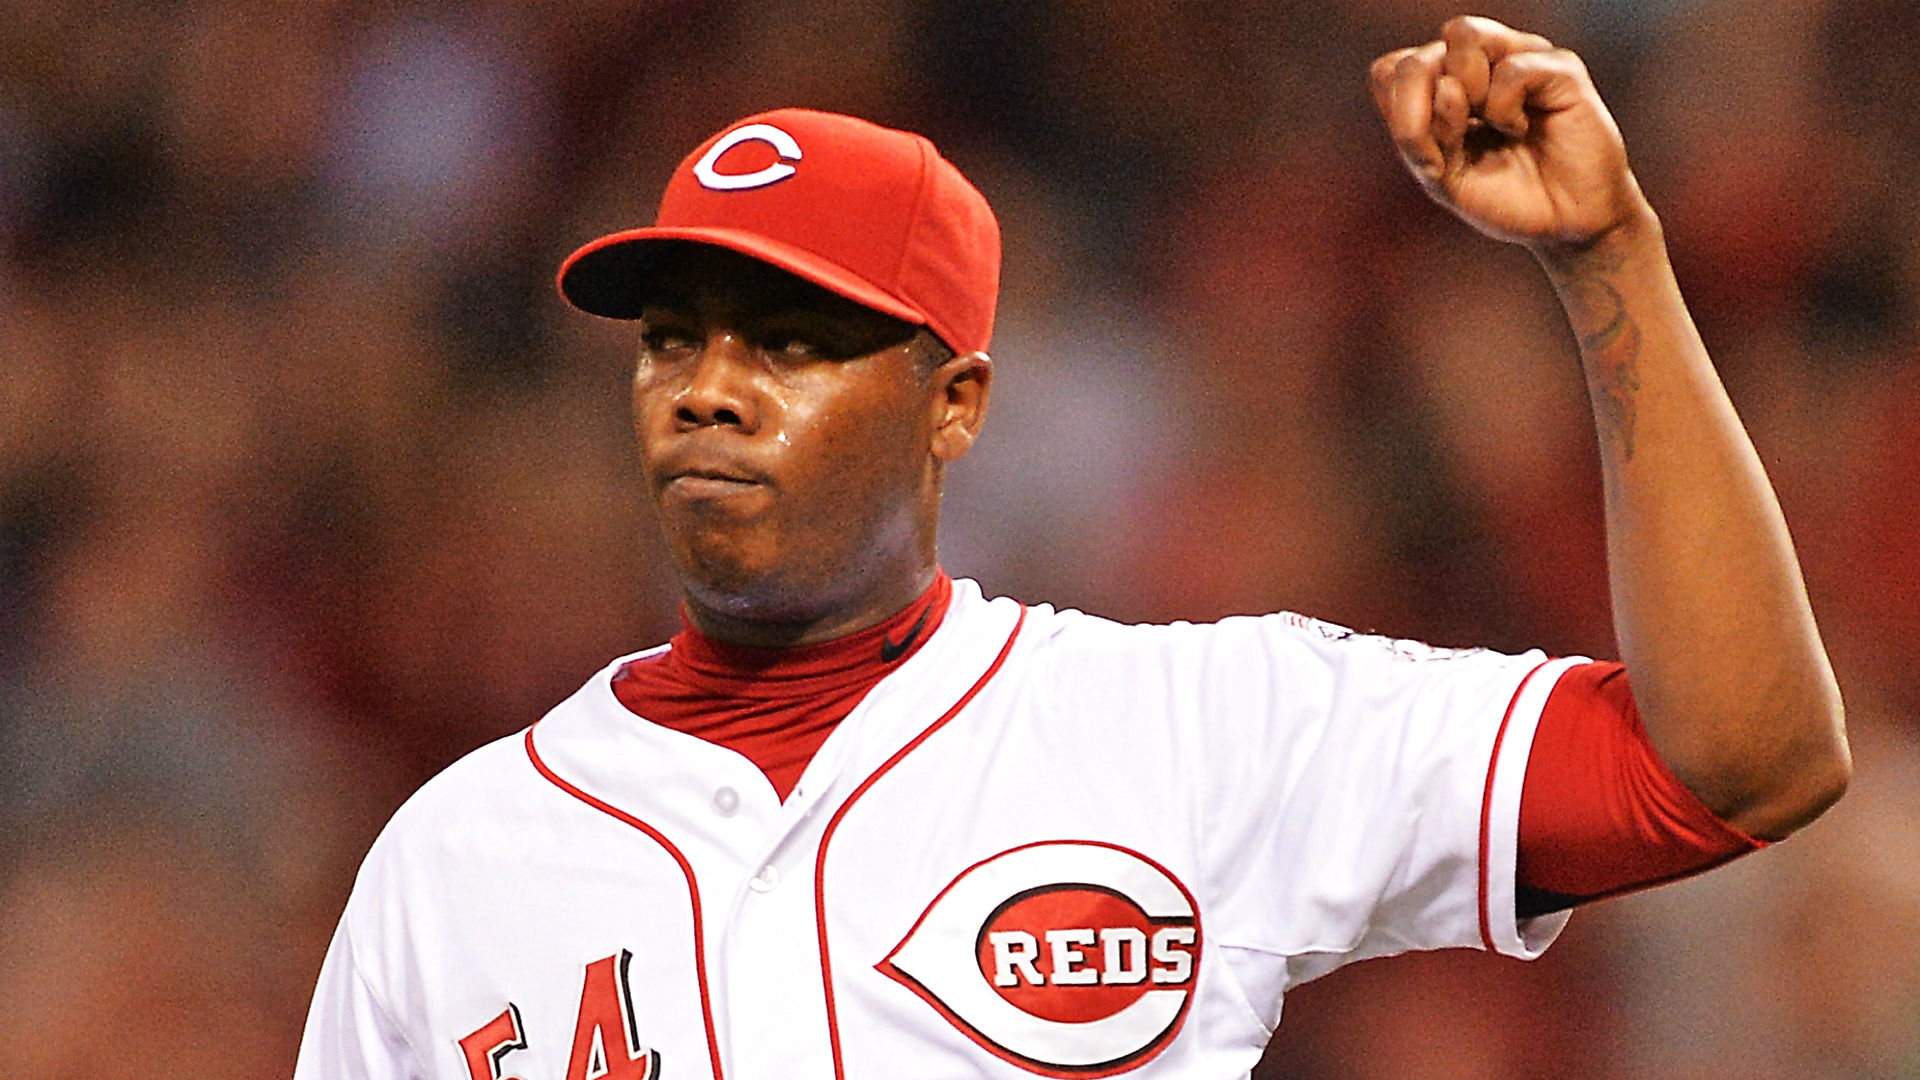 Aroldis Chapman trade rumors: Giants have inquired about Reds' closer